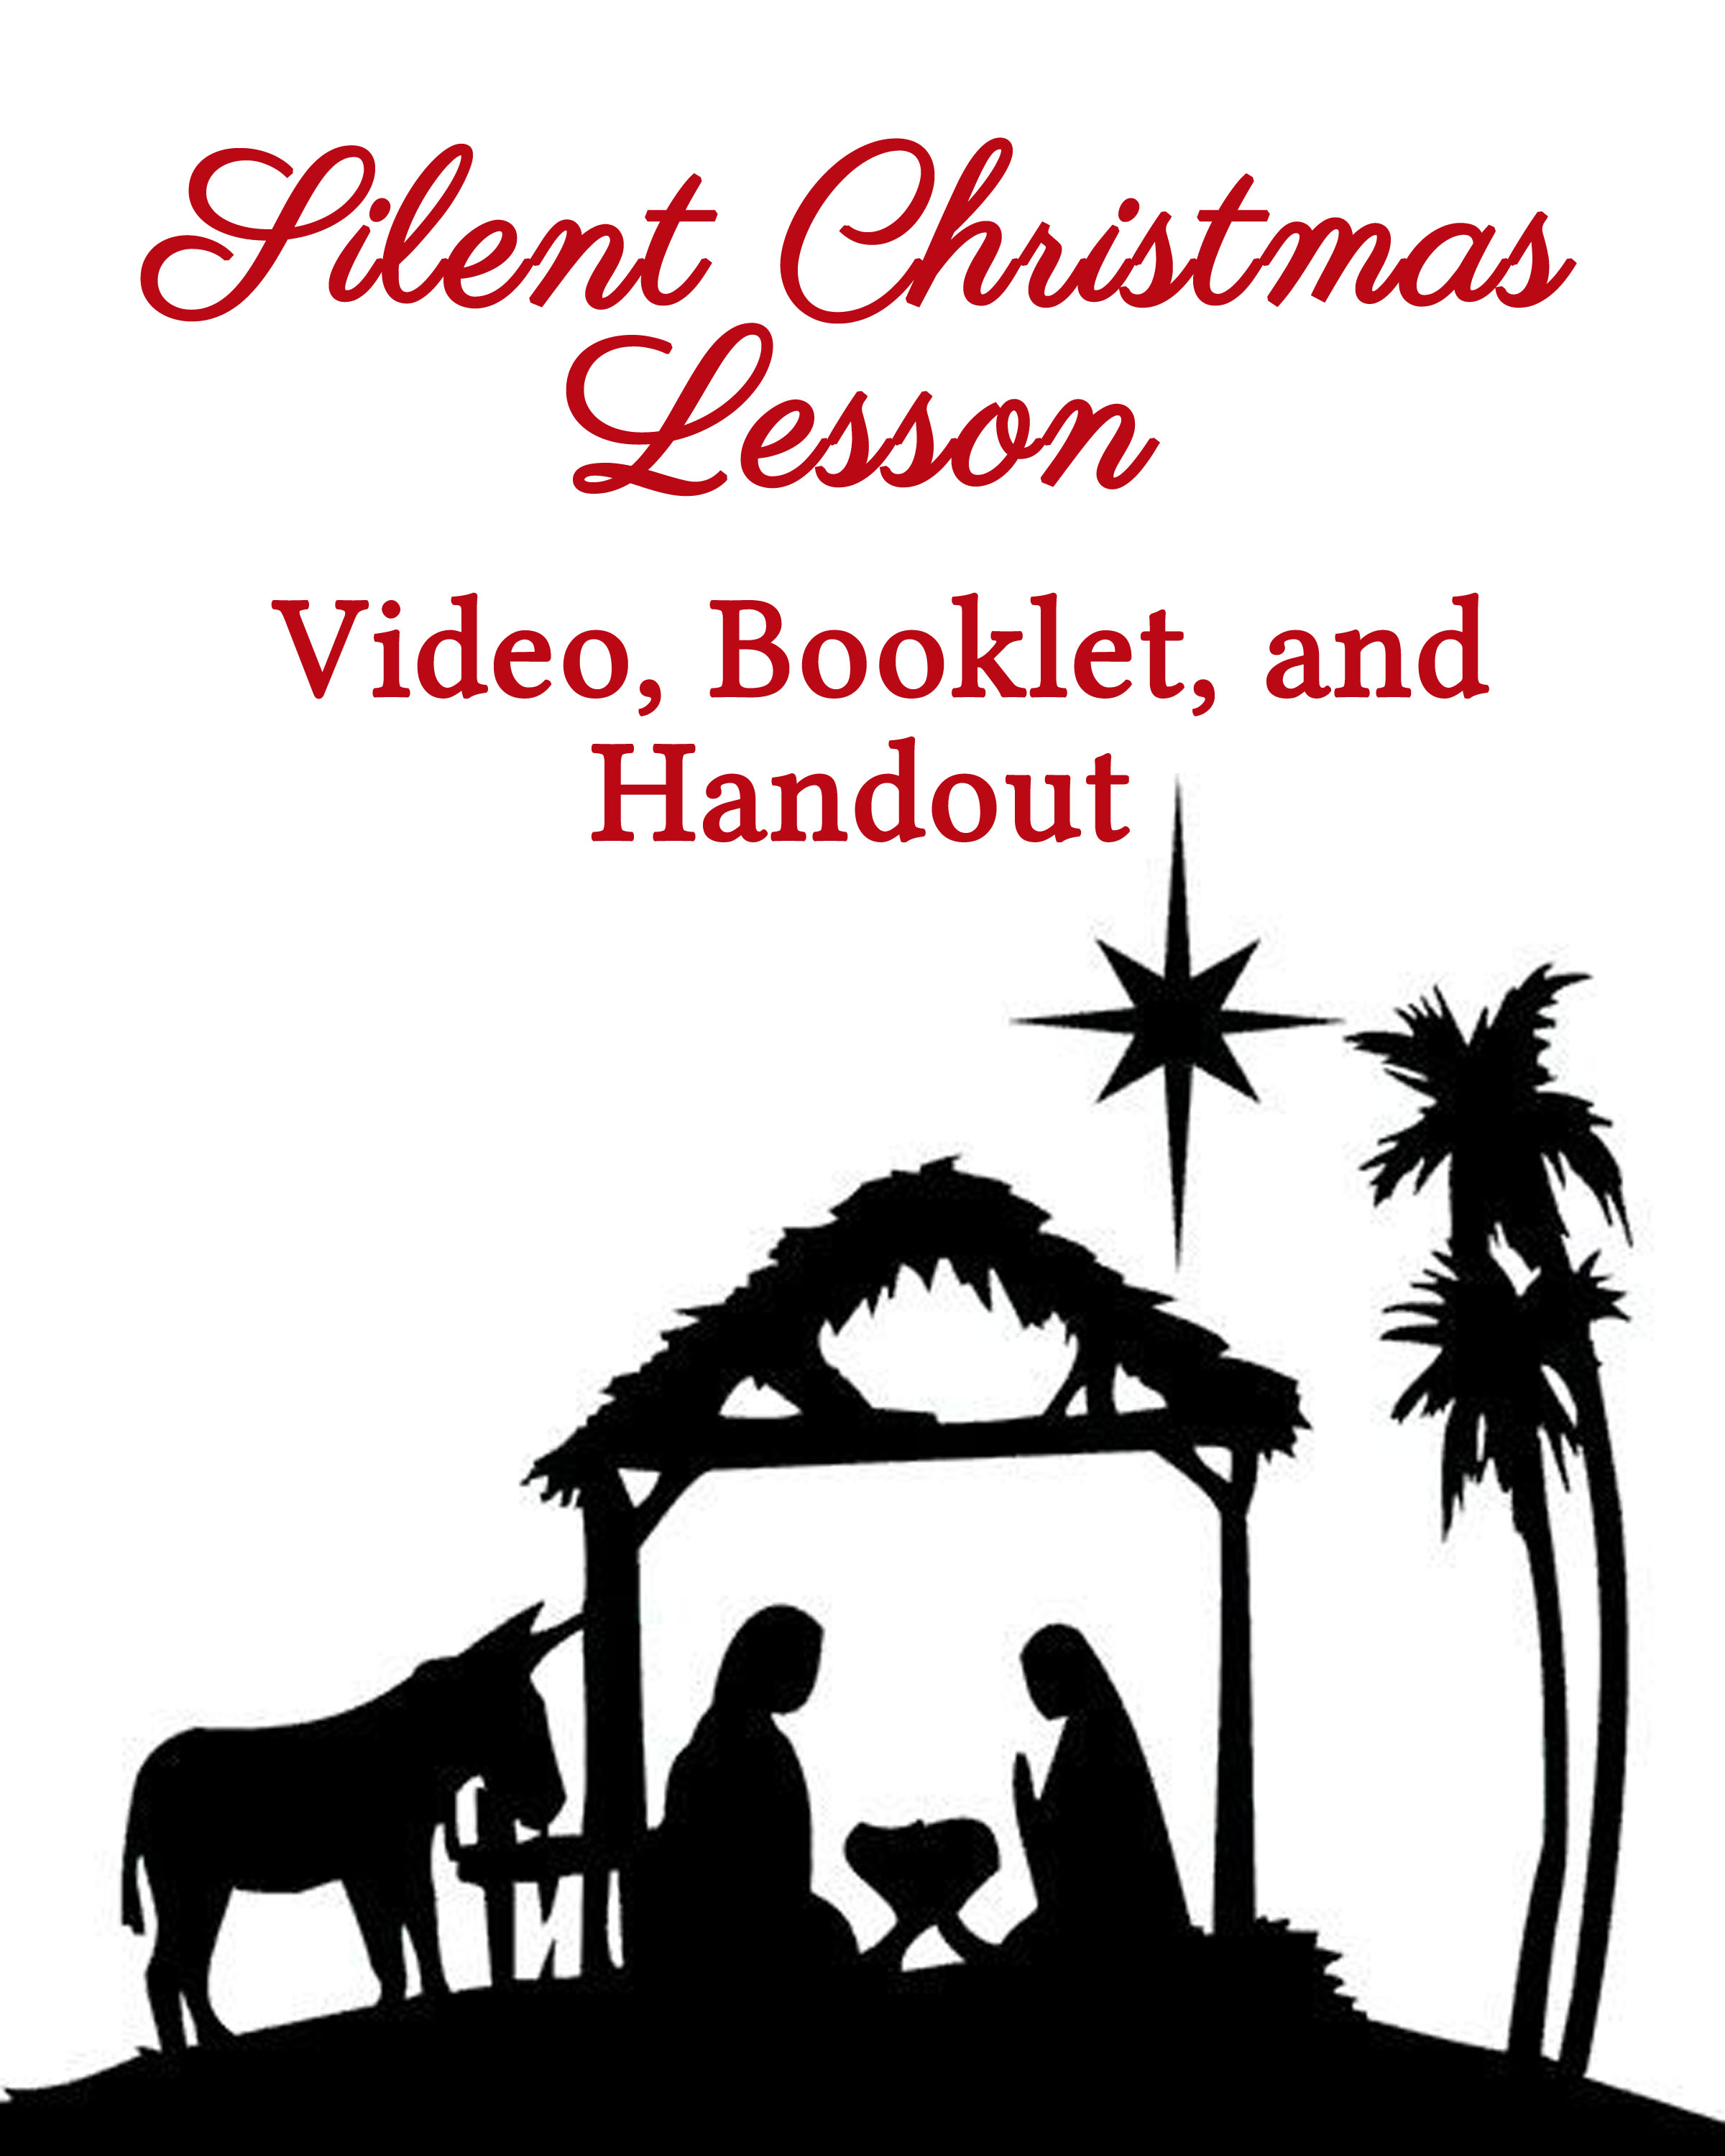 109 Best Christmas Lds Images On Pinterest: Silent Christmas Lesson For Youth & Families